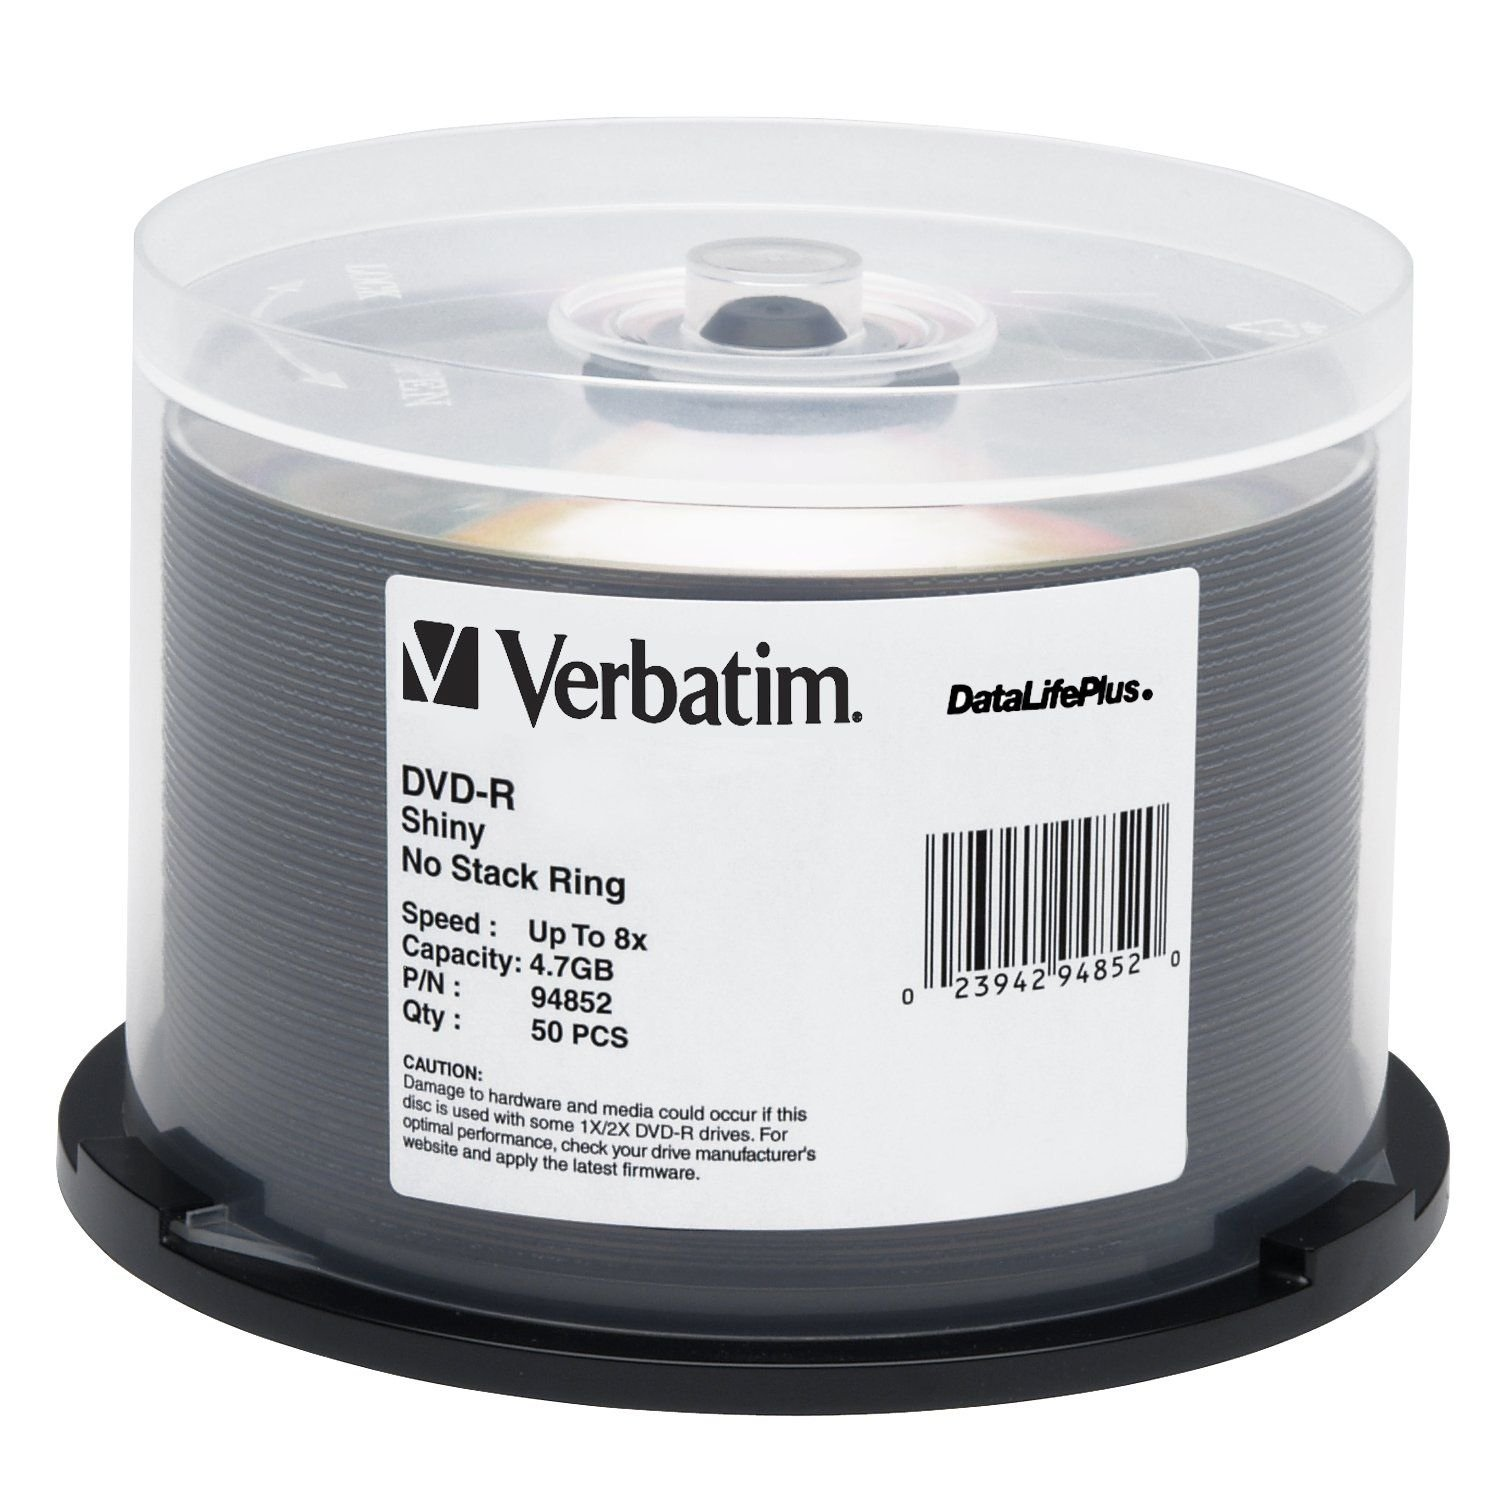 Verbatim Shiny Silver DataLife Plus 8x DVD-R 50 Disc Spindle 94852